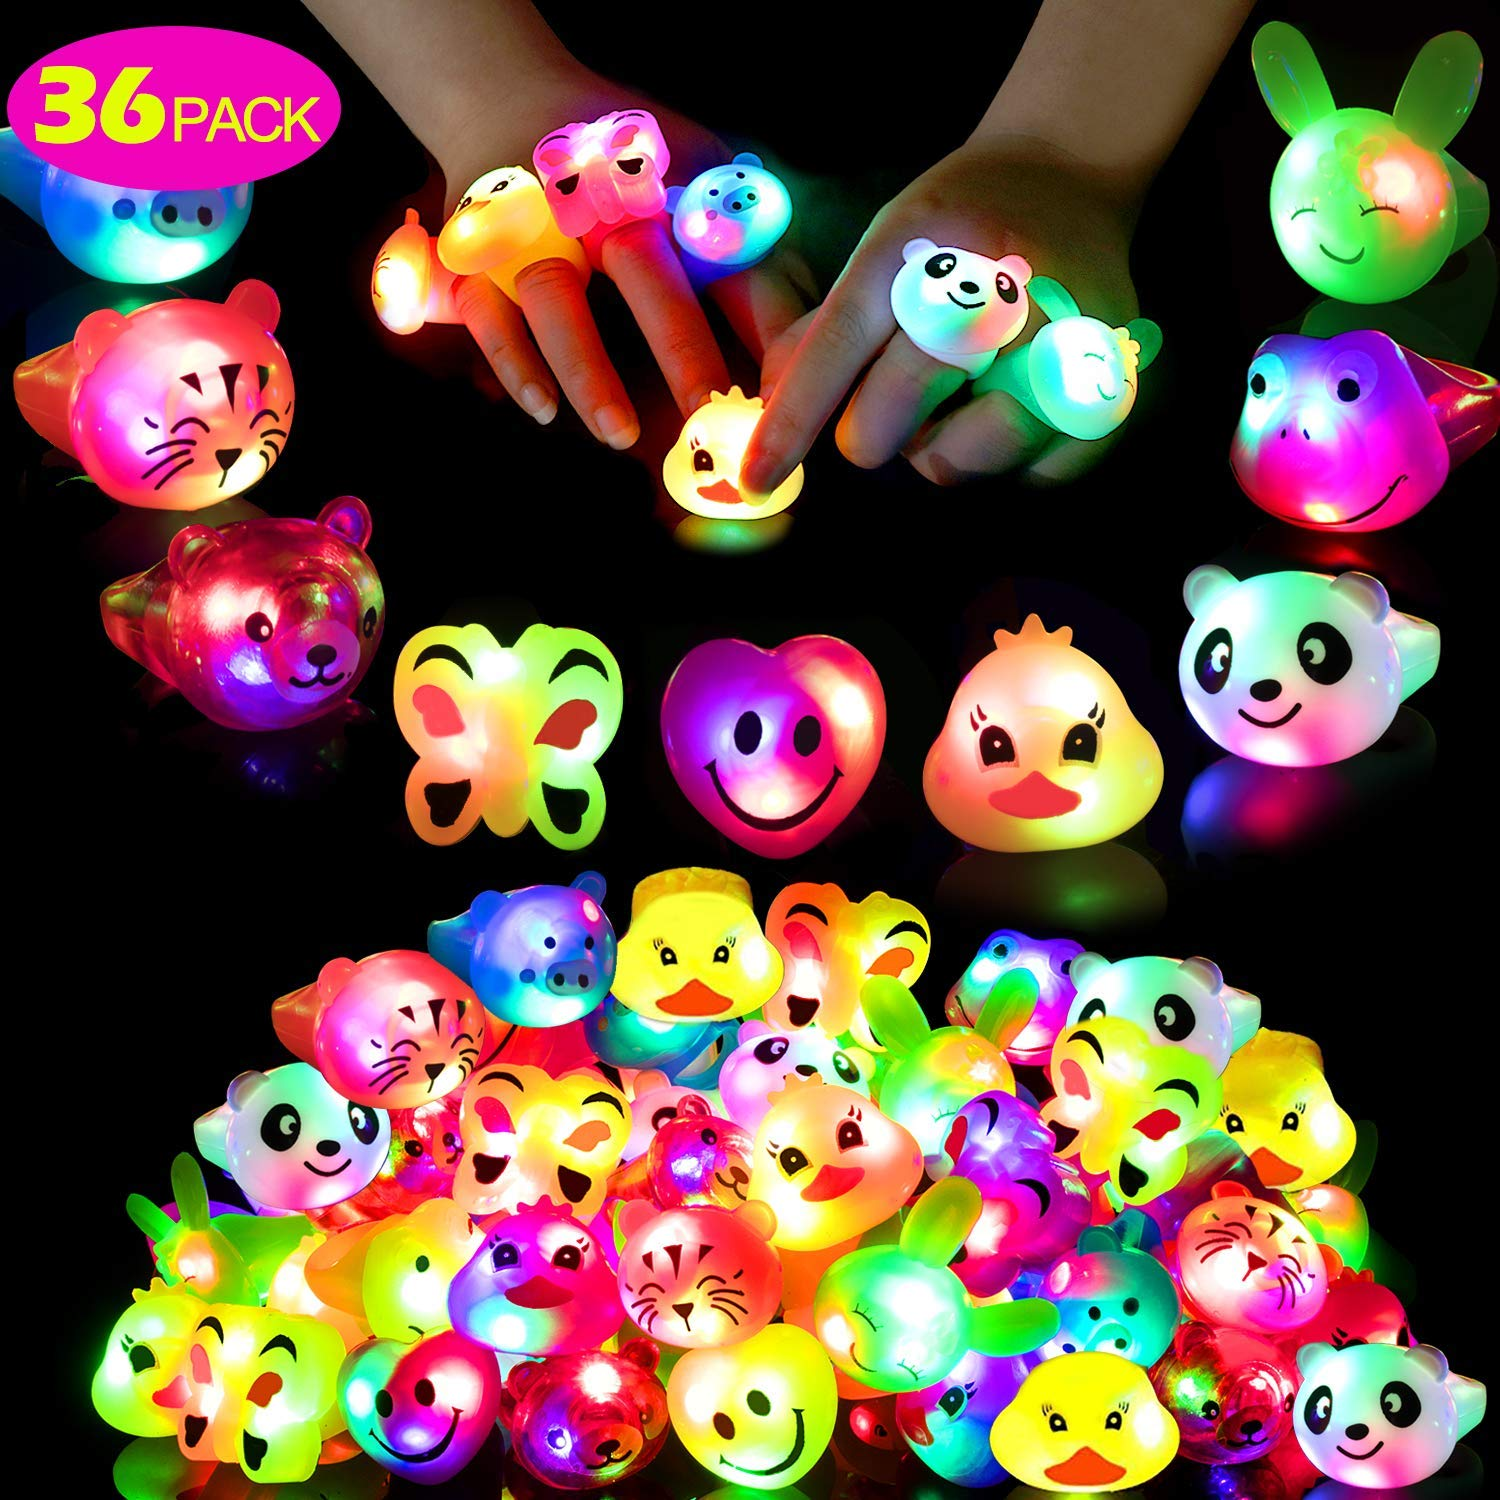 Birthday Party Favors for Kids Prizes Flashing 36 Pack LED Jelly Light Up Rings Toys Bulk Boys Girls Gift Blinky Glow in The Dark Party Supplies 9 Color 9 Shape by PBOX